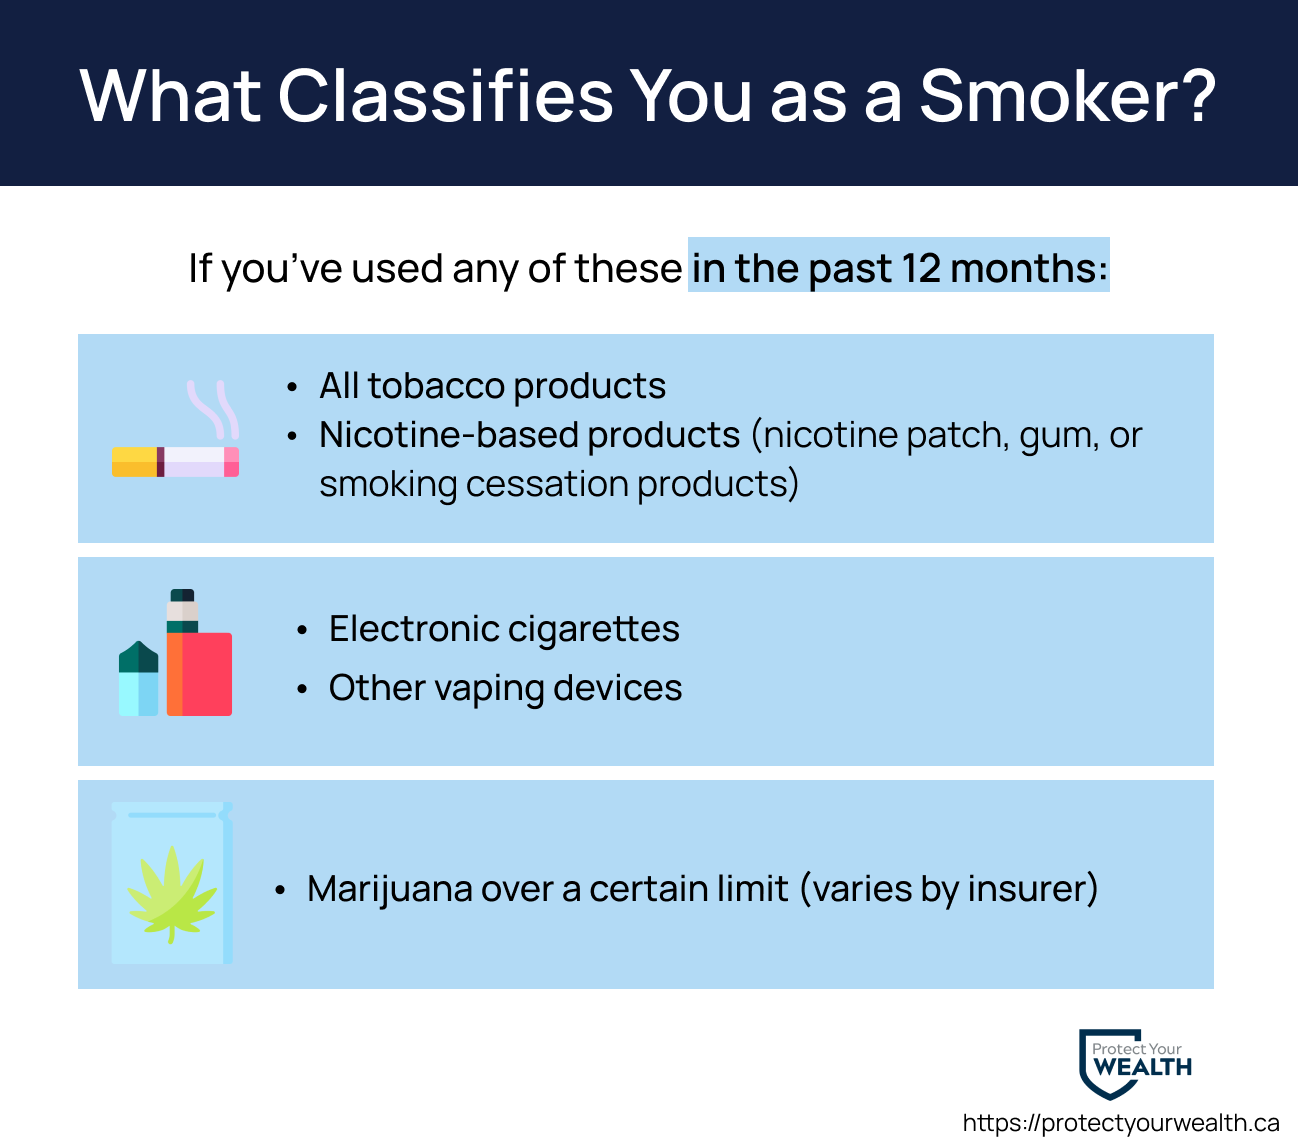 What classifies you as a smoker for life insurance in Canada?